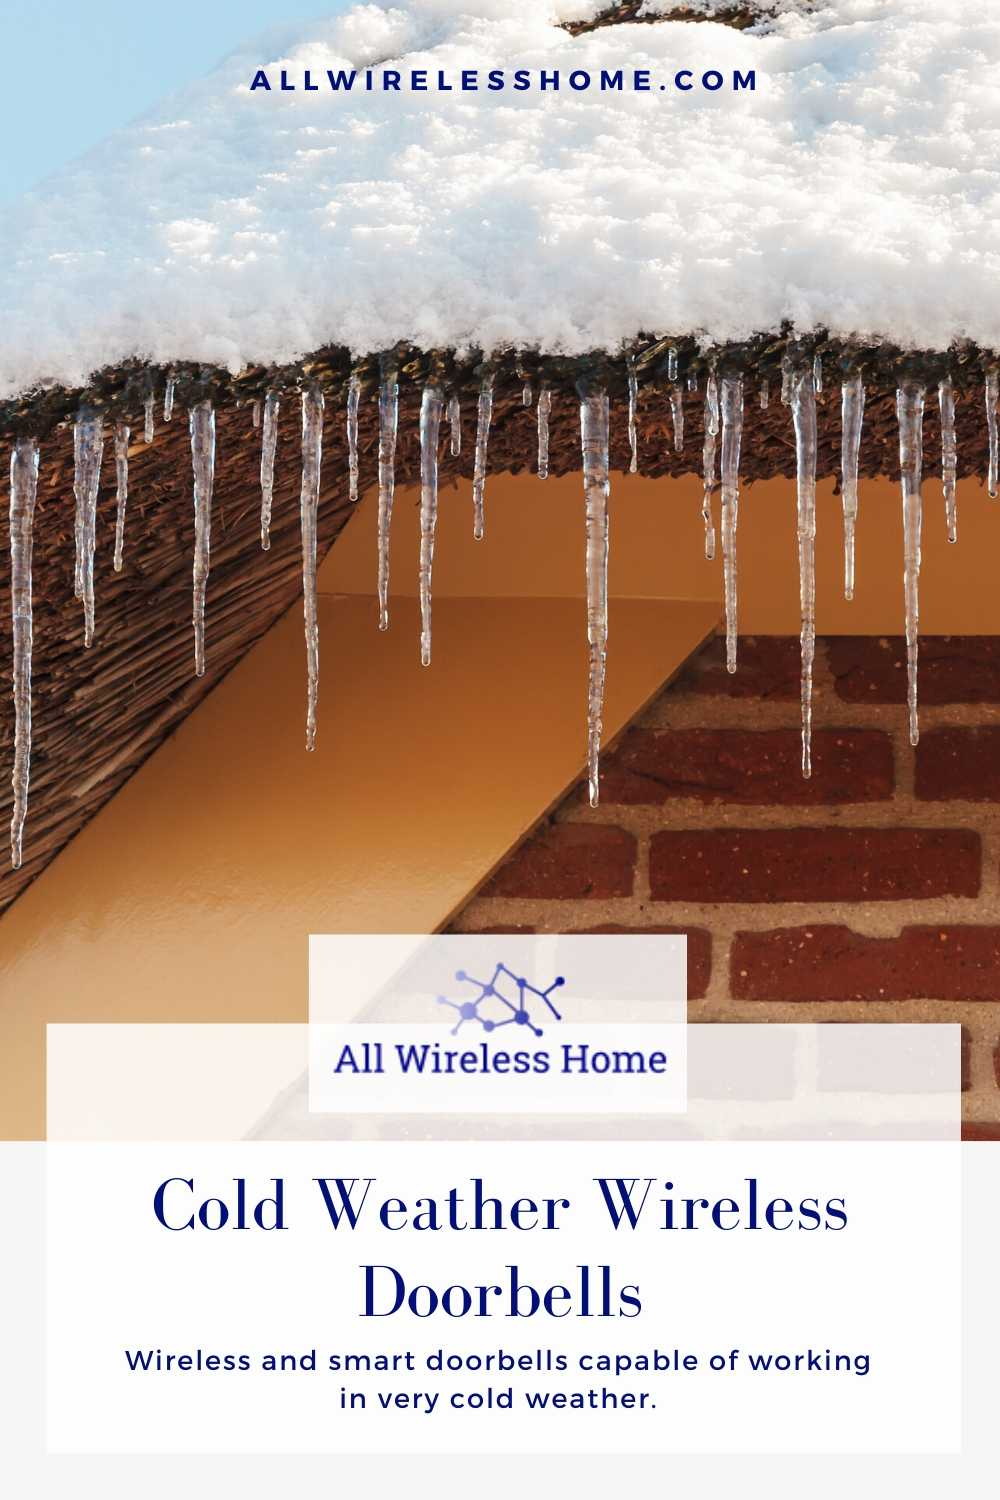 Cold Weather Wireless Doorbells